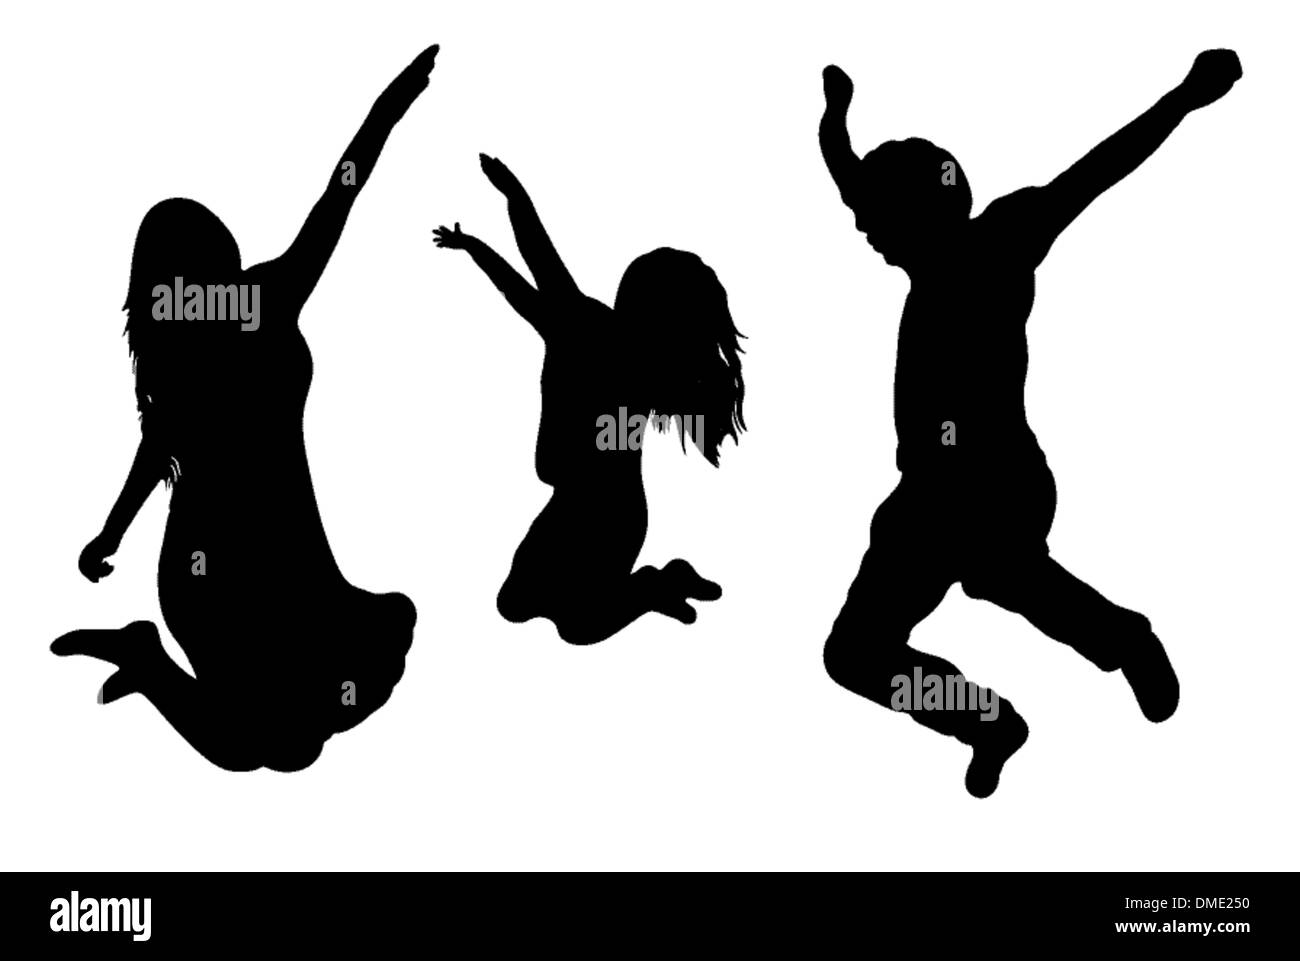 Jumping Family Silhouette - Stock Image